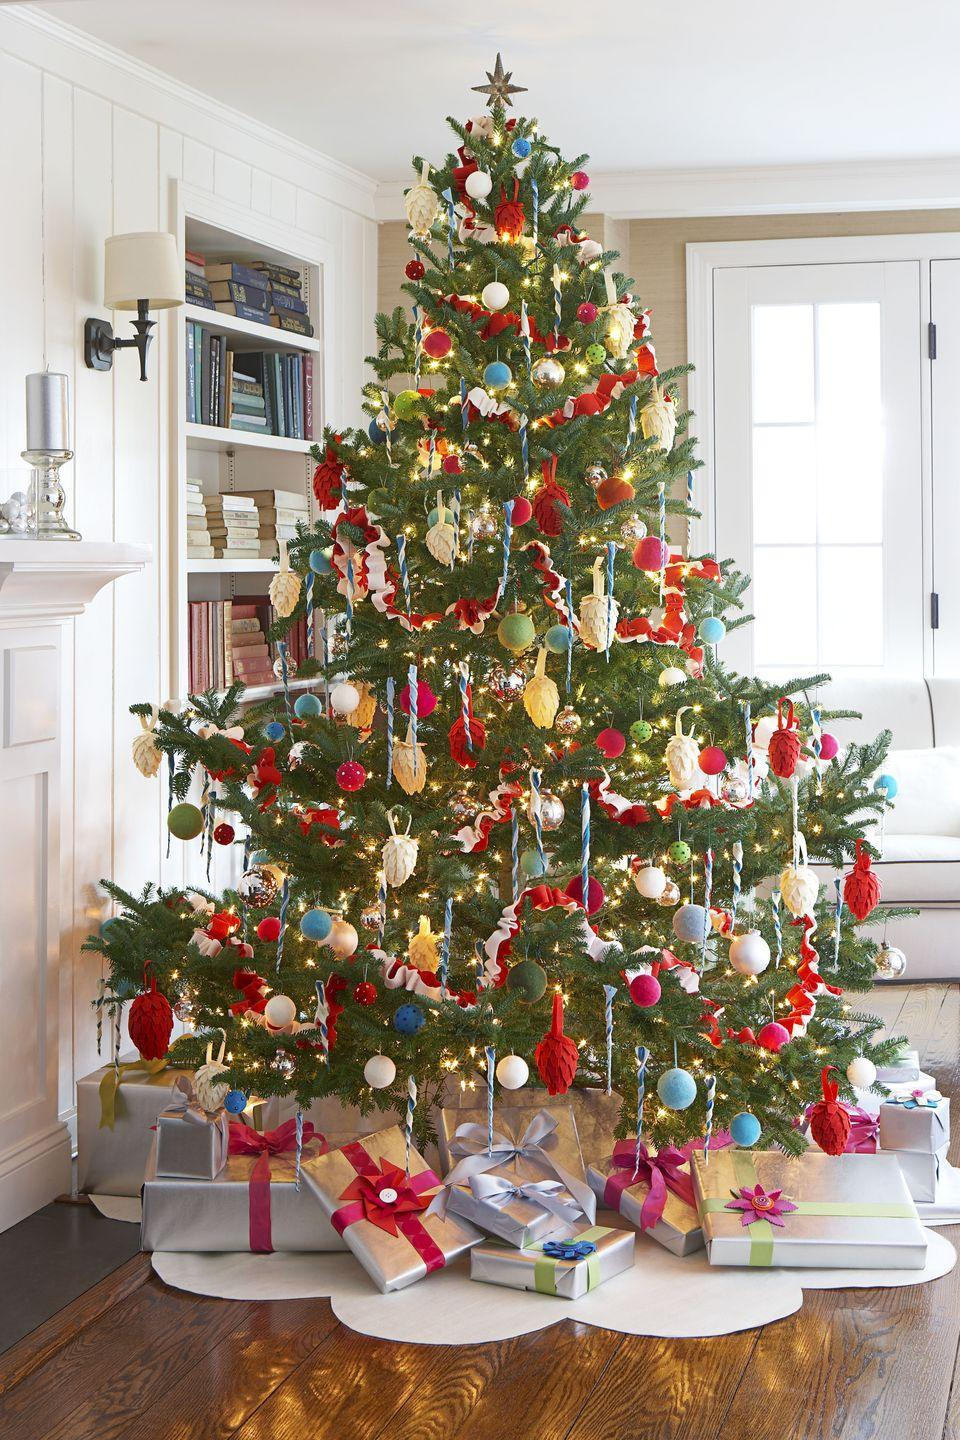 """<p><span class=""""redactor-invisible-space"""">Put your love of maximalist decor on full display with a tree that's decked out in colorful ornaments, blue ribbons, and loads of warm lights. </span> </p>"""